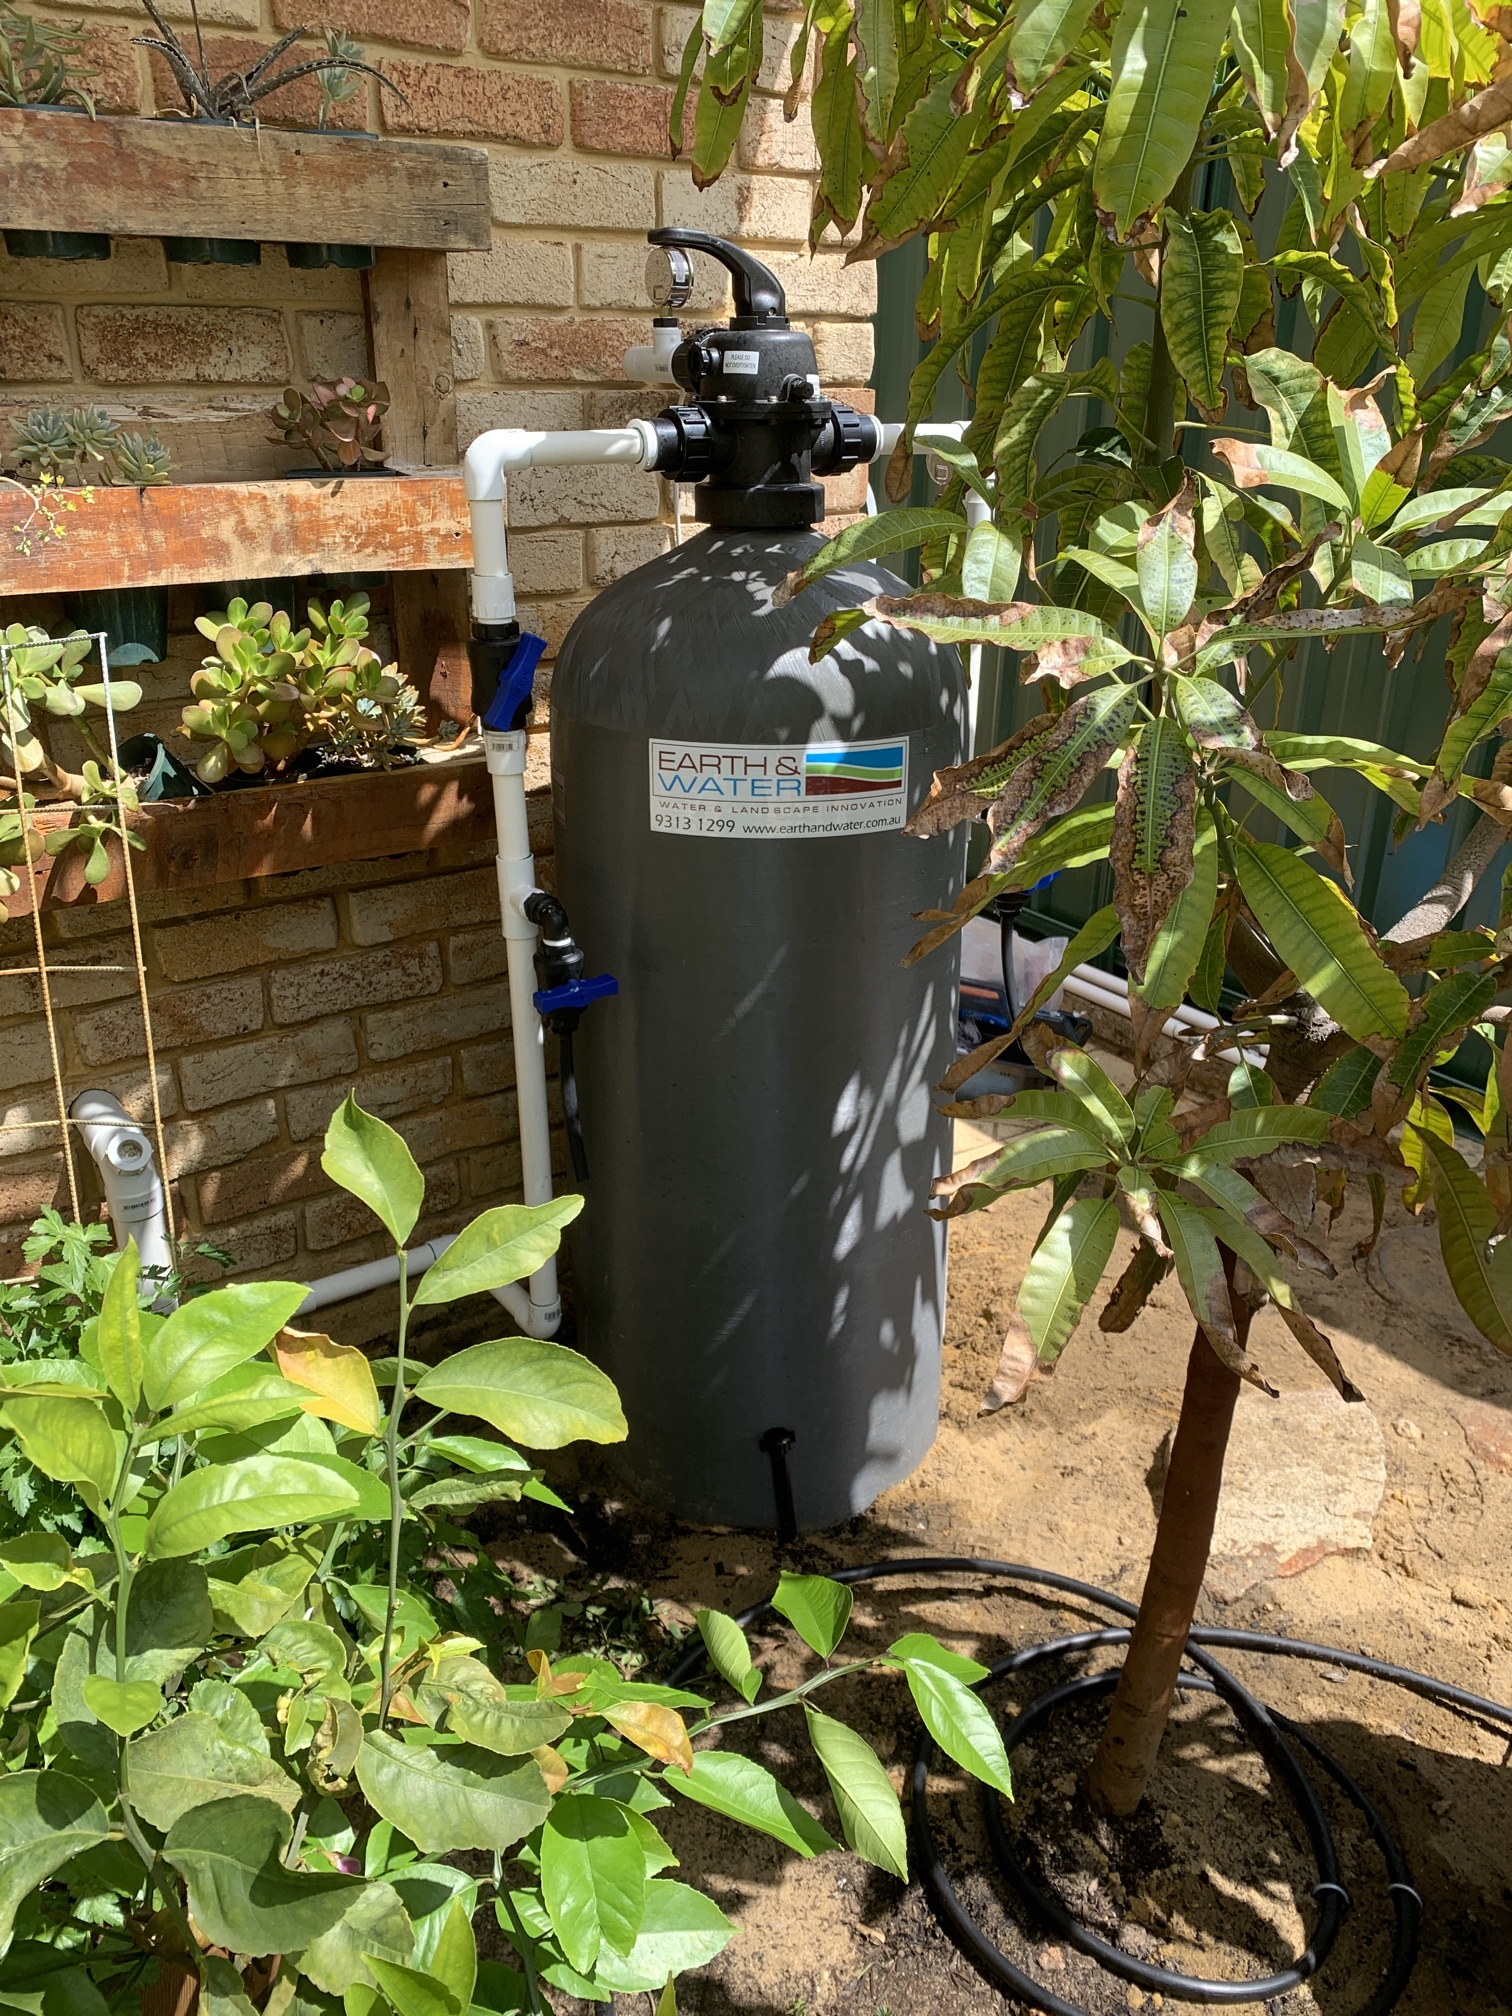 Joondalup Iron stain removal and bore water treatment Letter box